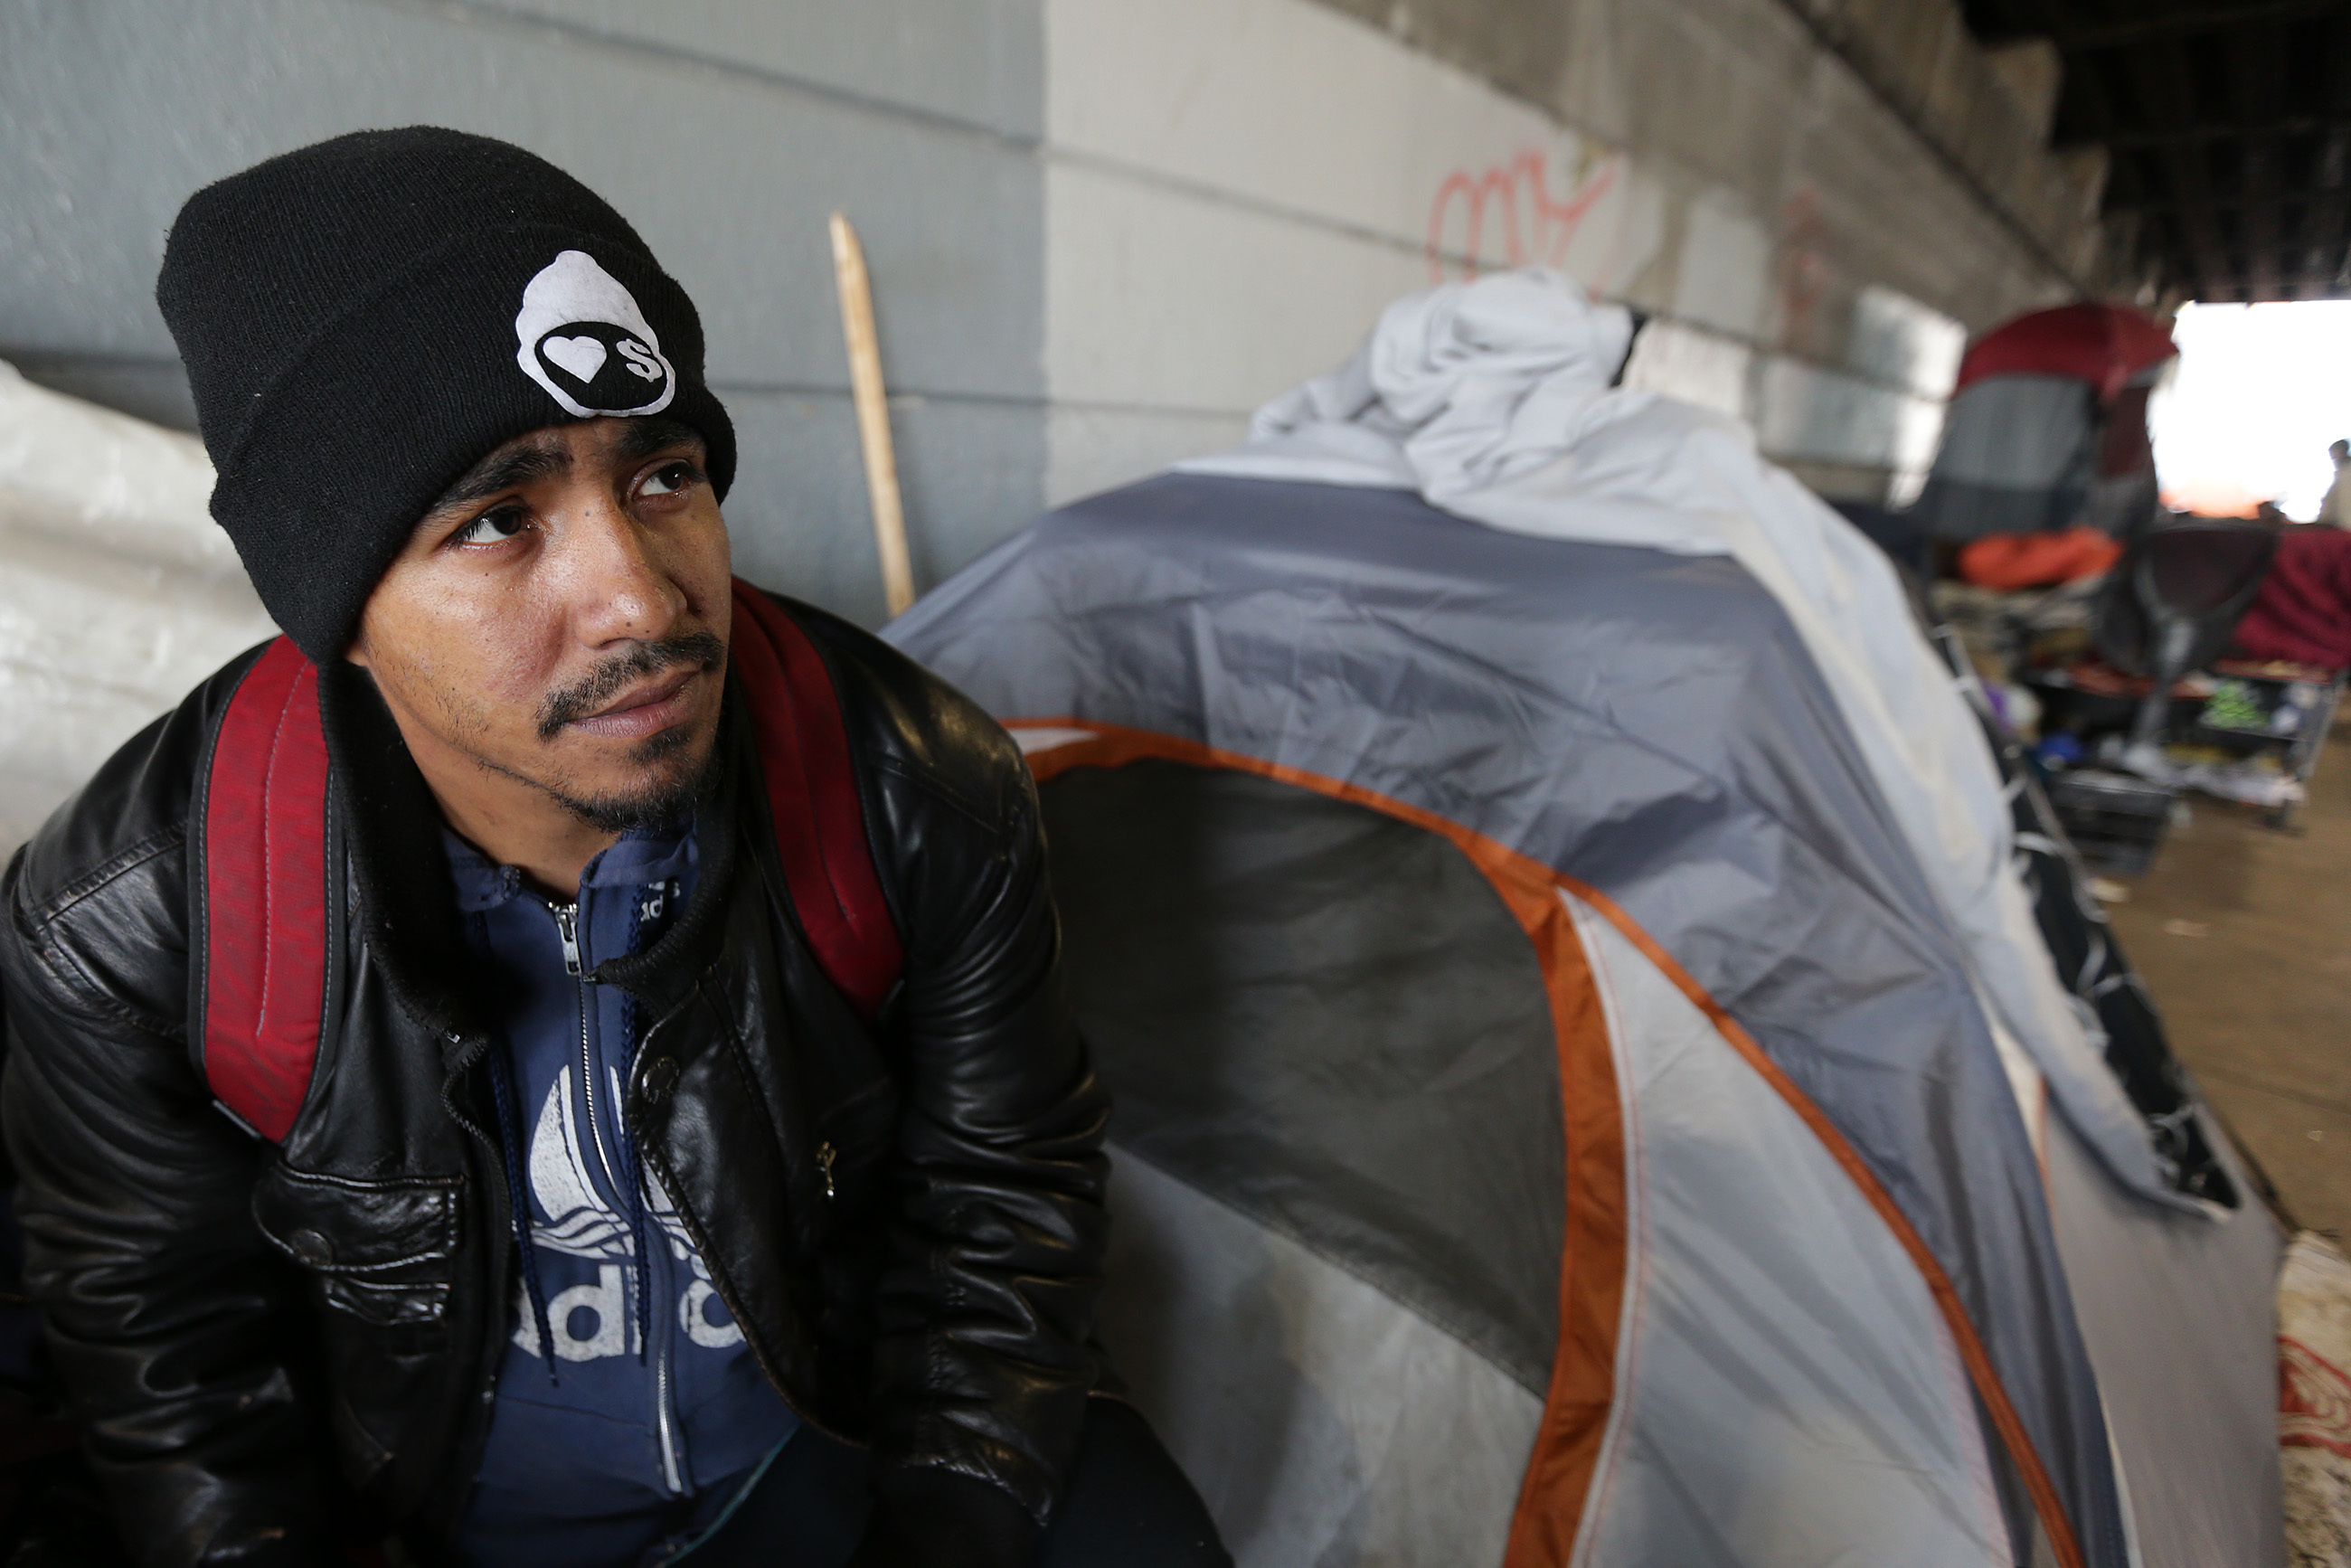 Salvatore Gonzalez lives under the bridge at Kensington and Lehigh. He said he would try to find another place to live after the city has given the homeless living under the bridge until May 30 to leave.